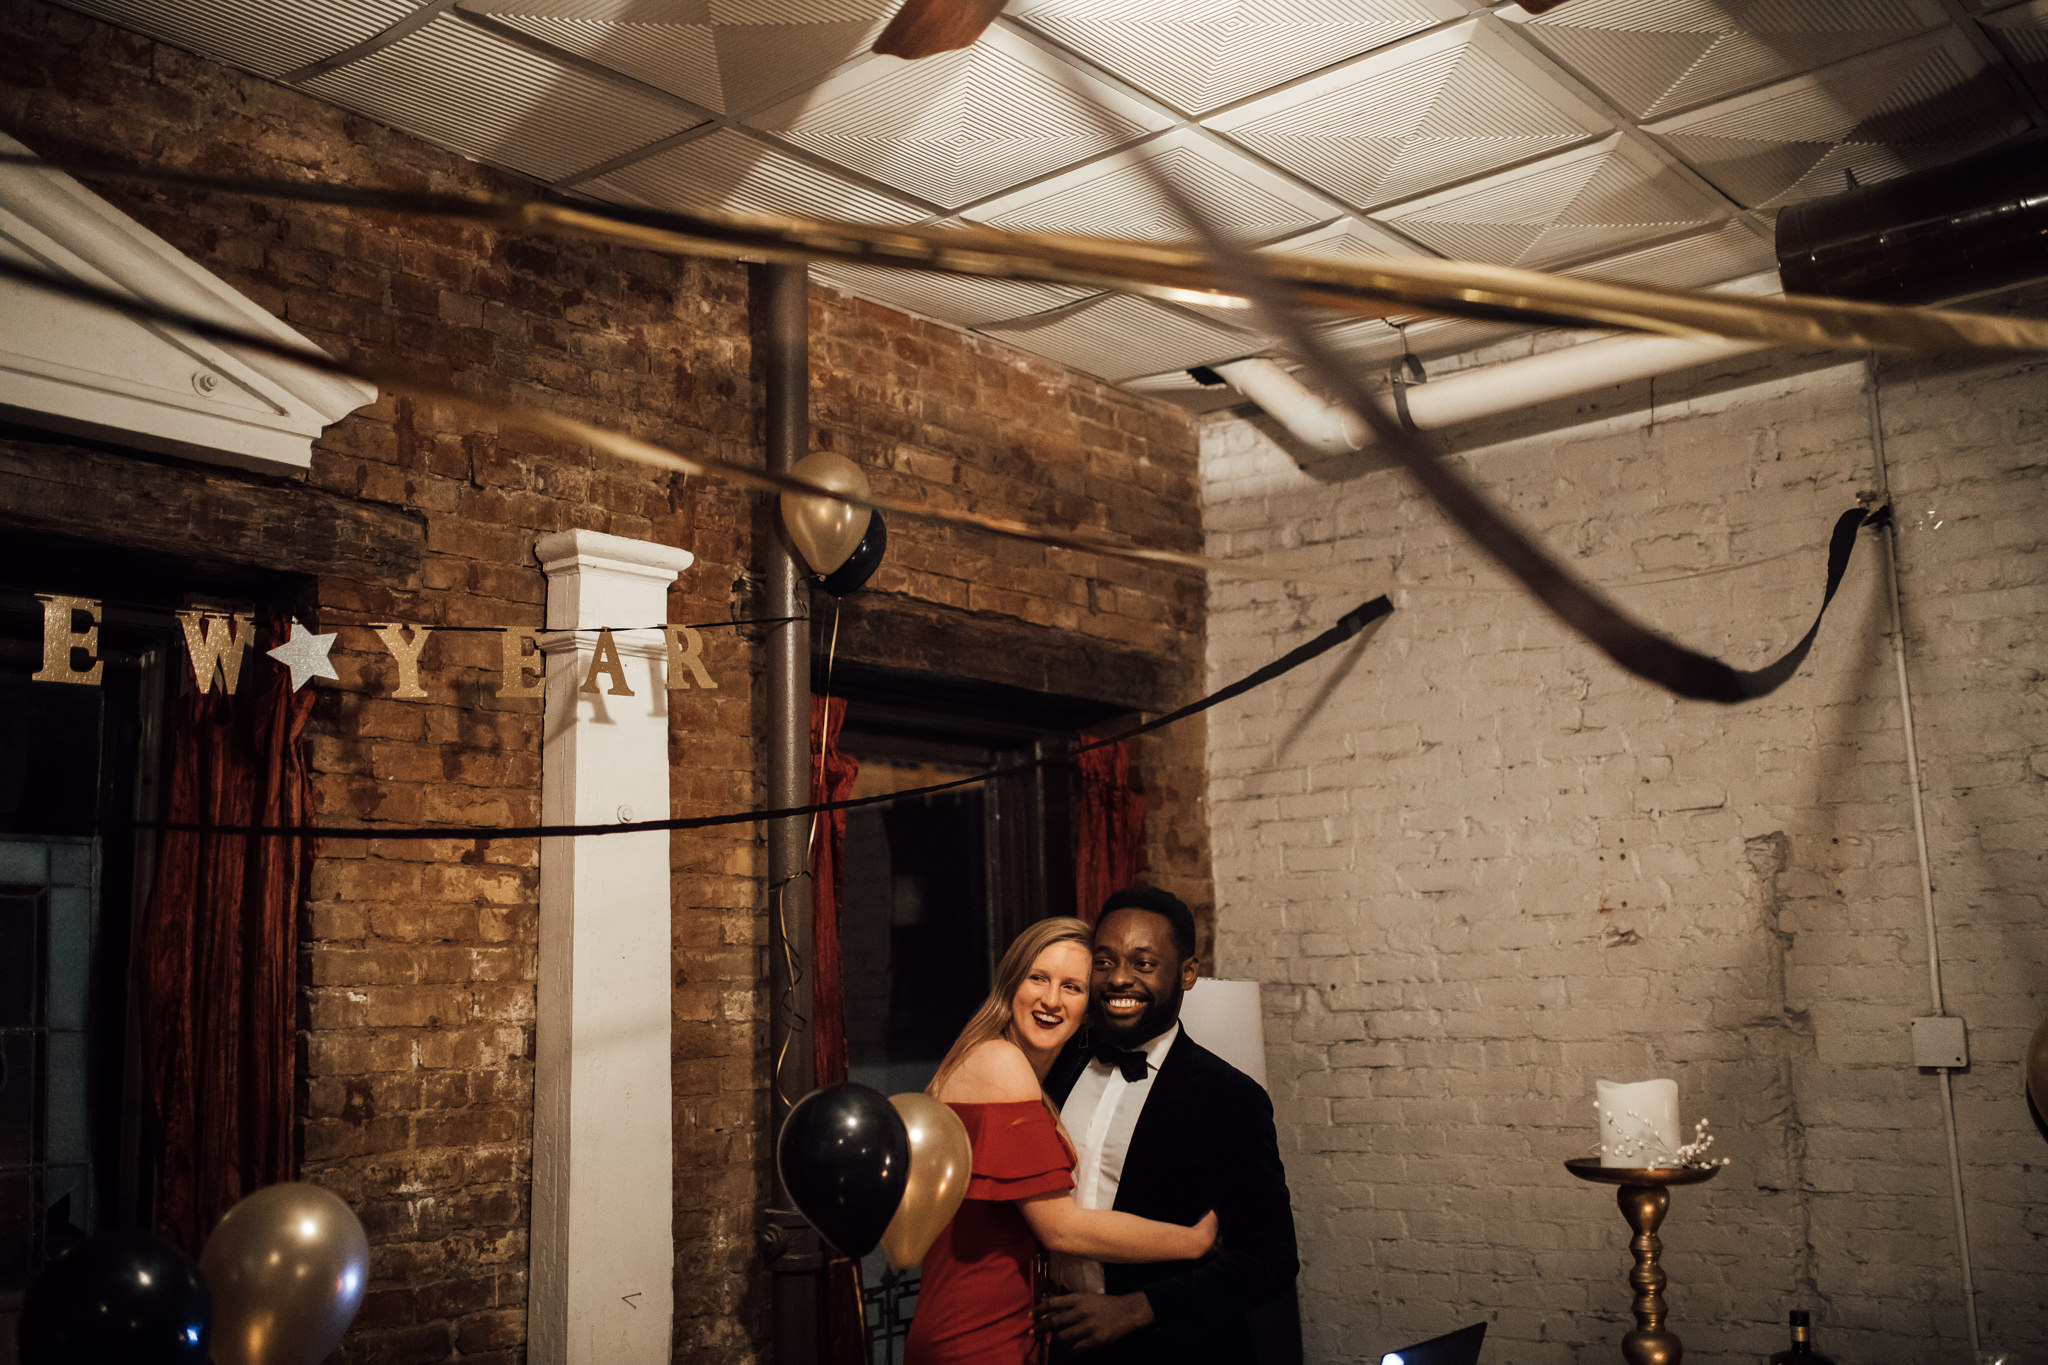 memphis-engagement-photographer-new-years-eve-proposal-cassie-cook-photography-47.jpg